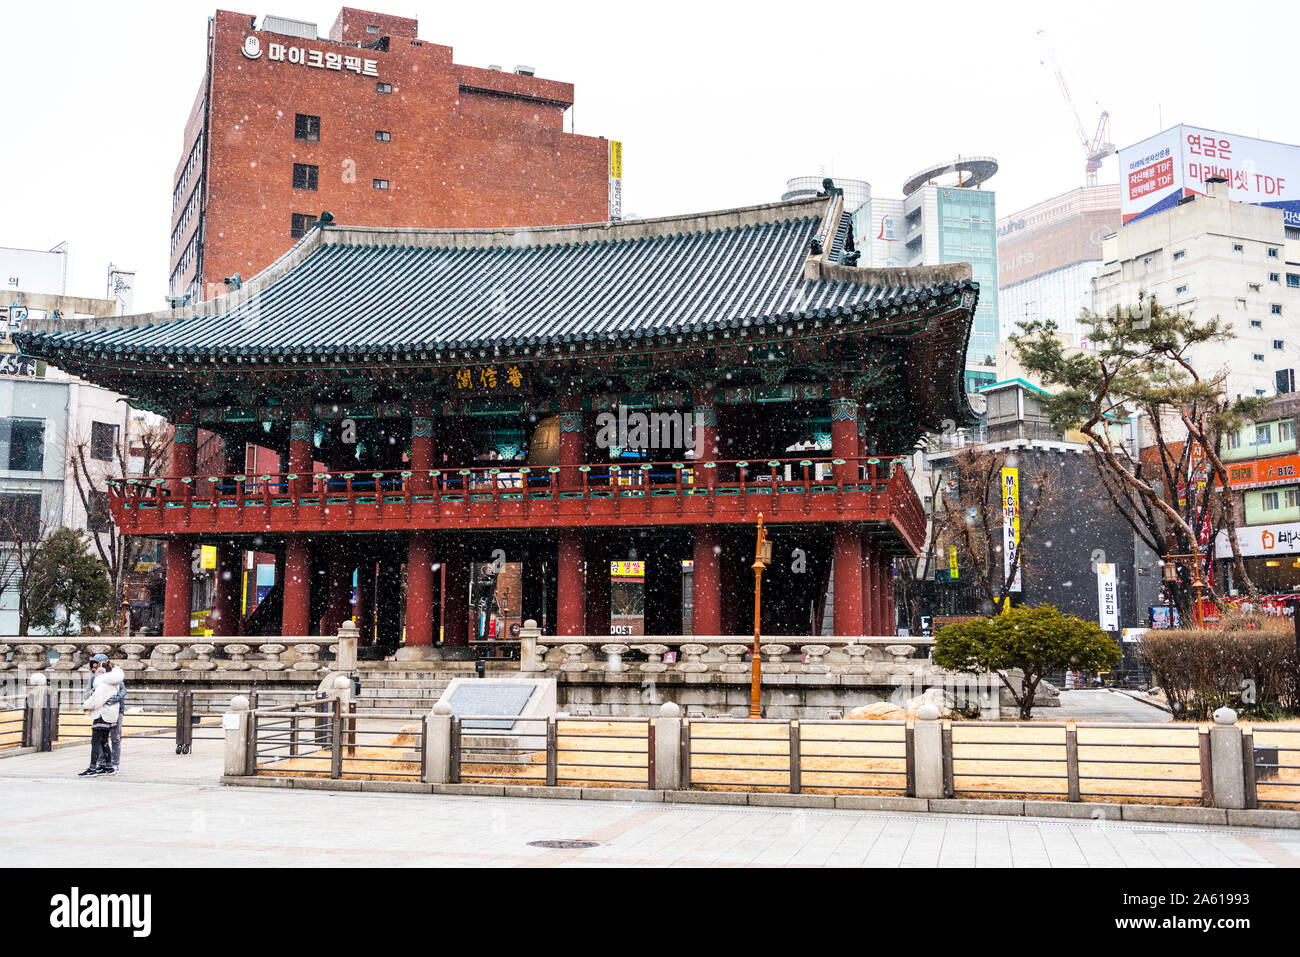 Posin-gak (Bosin-gak) in a snowy day in winter, a large bell pavilion on Jongno in Seoul, South Korea, originally constructed in 1396 but destroyed ma Stock Photo